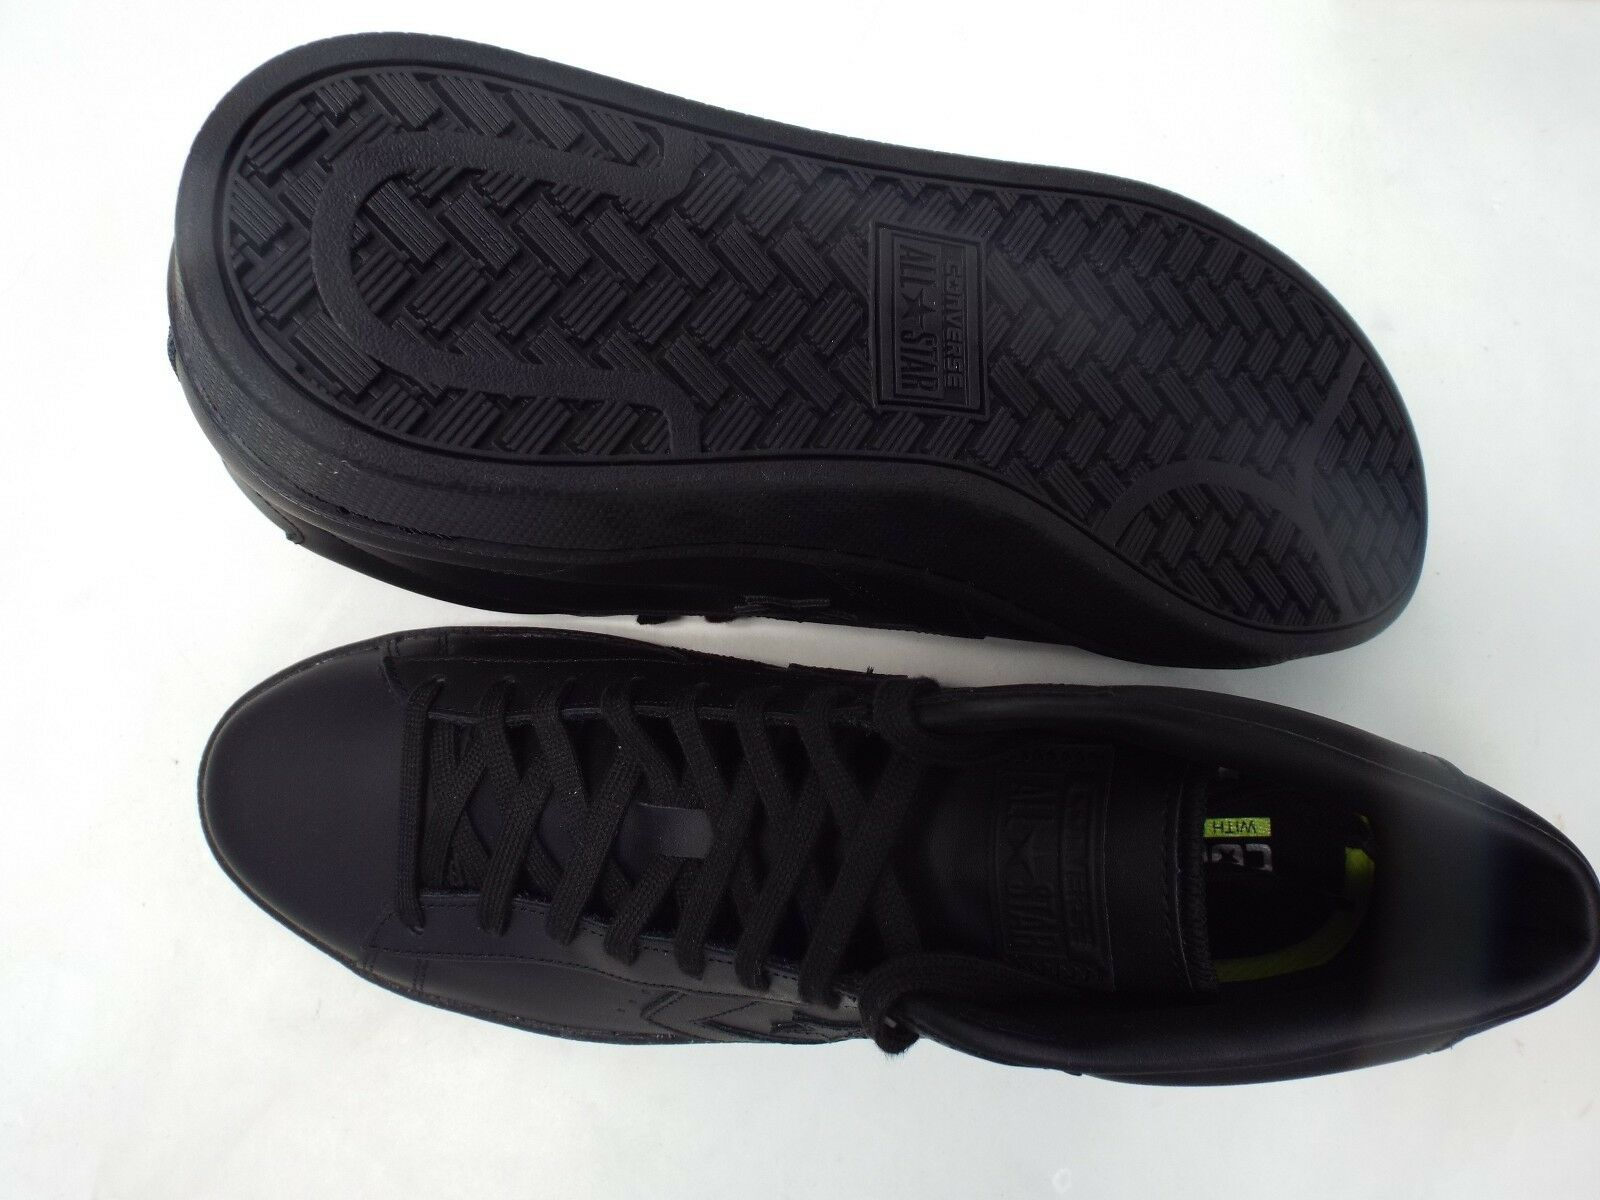 Uomo 13 converse all star 75 player pl 76 mid - 75 star 155334c pelle nera 7151f9